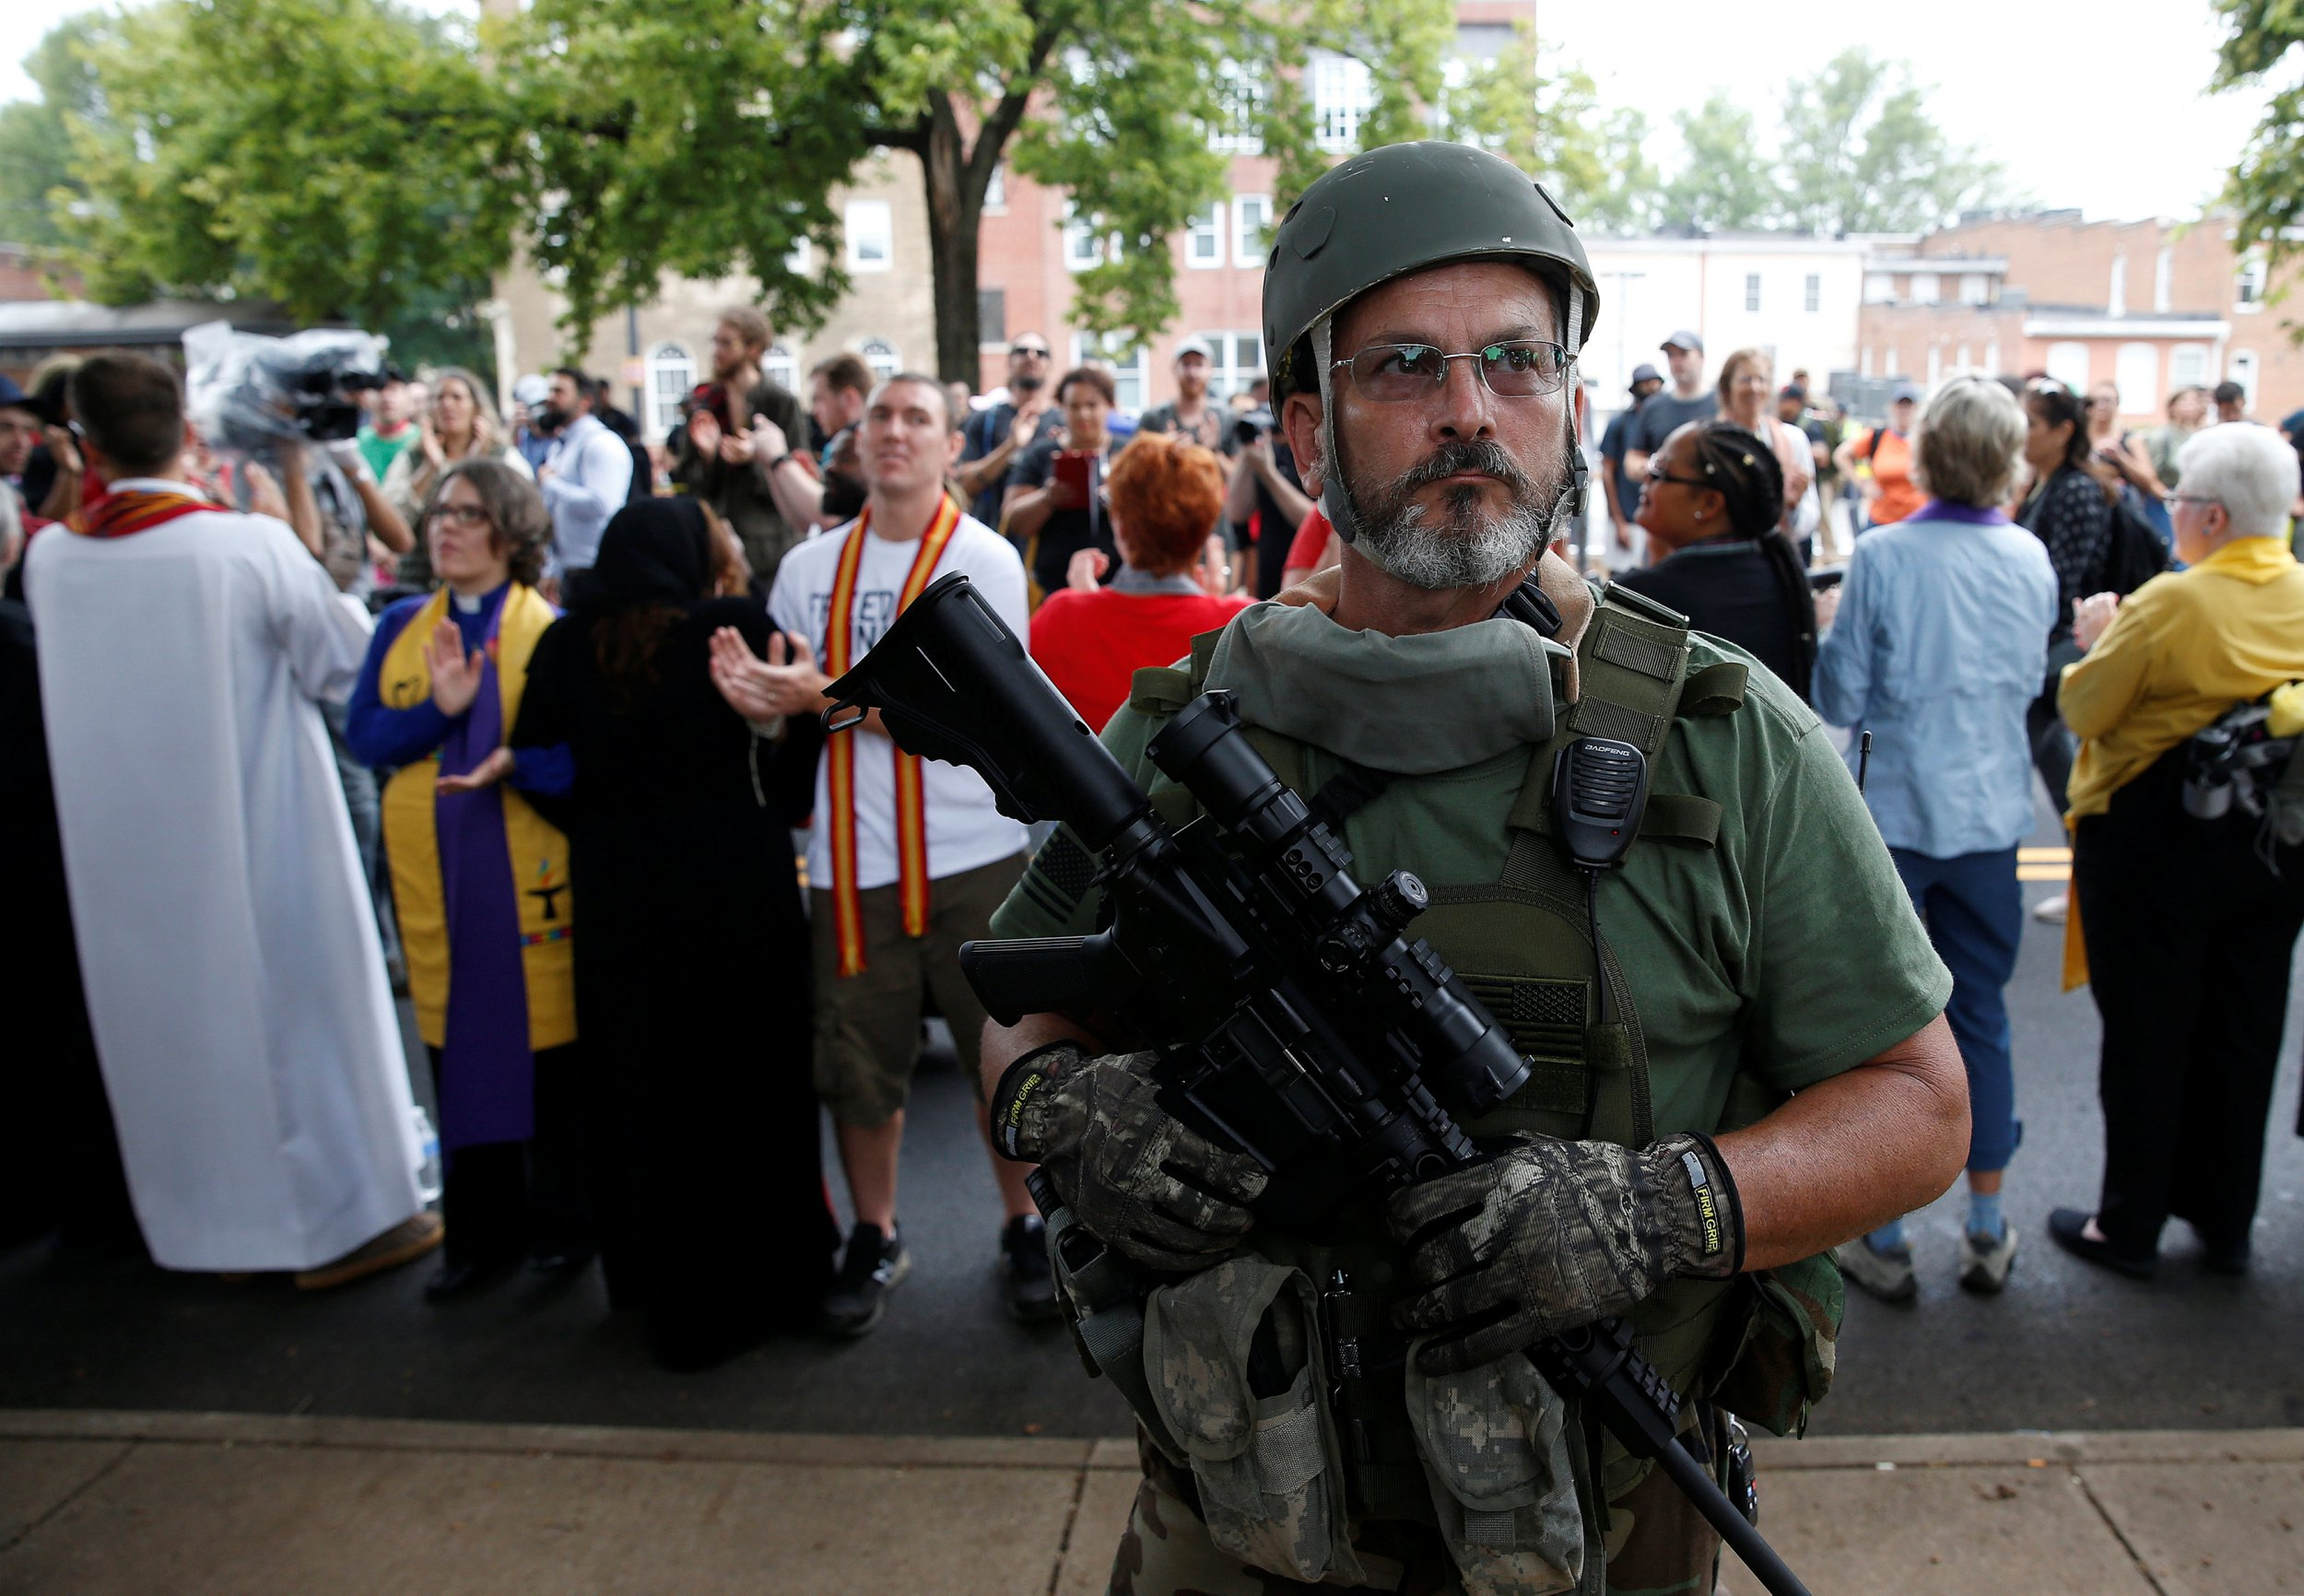 White supremacist militia seen patrolling Charlottesville rally with assault rifles